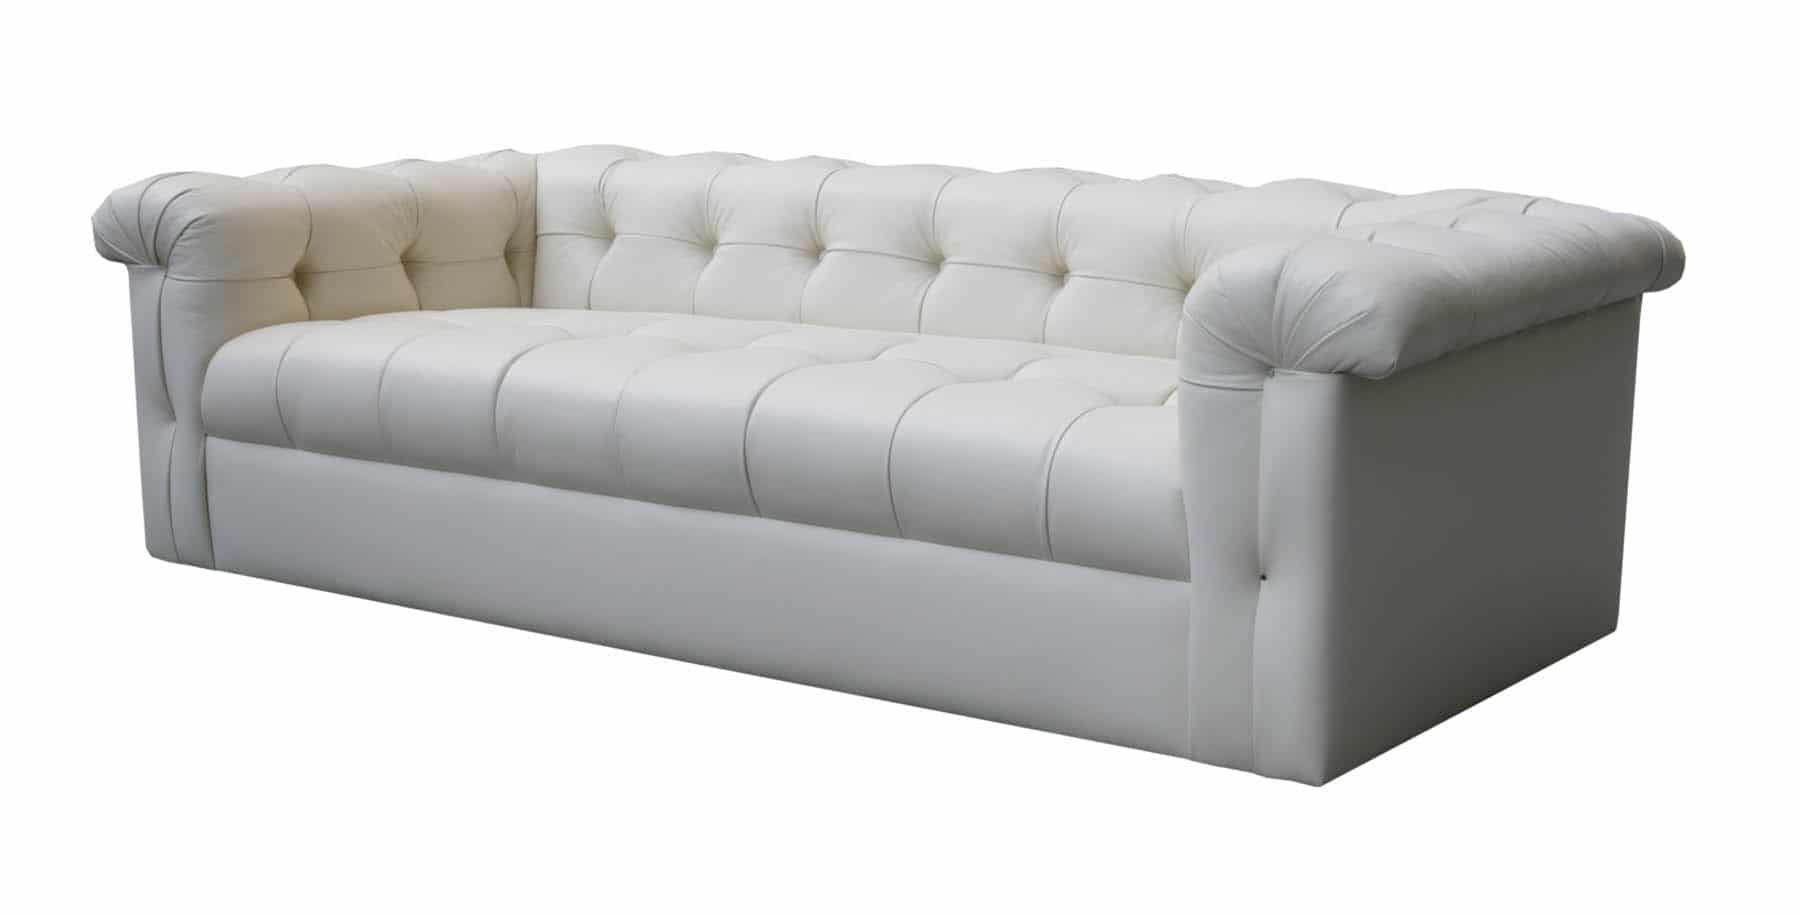 Edward Wormley Dunbar Six Foot Tufted Leather Sofa